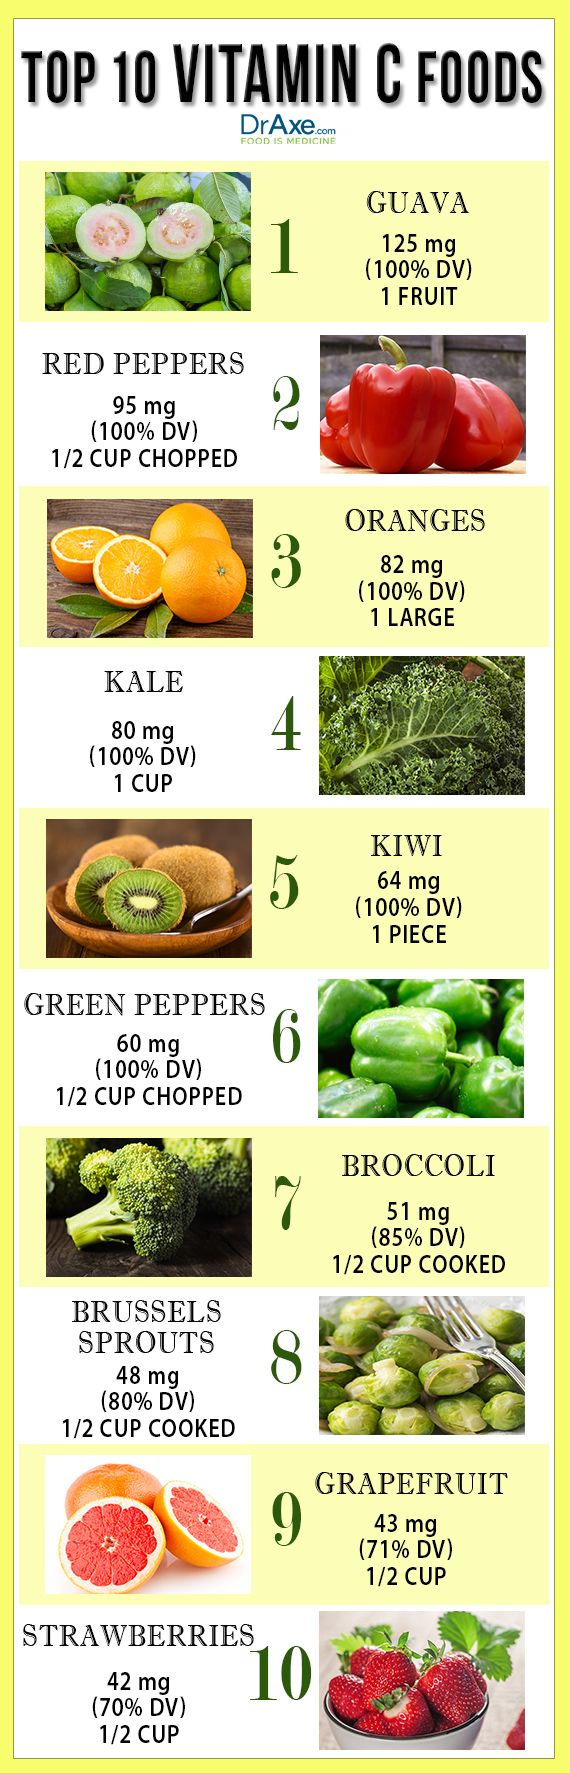 How does having a diet rich in Vitamin C make you look and feel younger? Check out The Feelgood Plan to find out more!